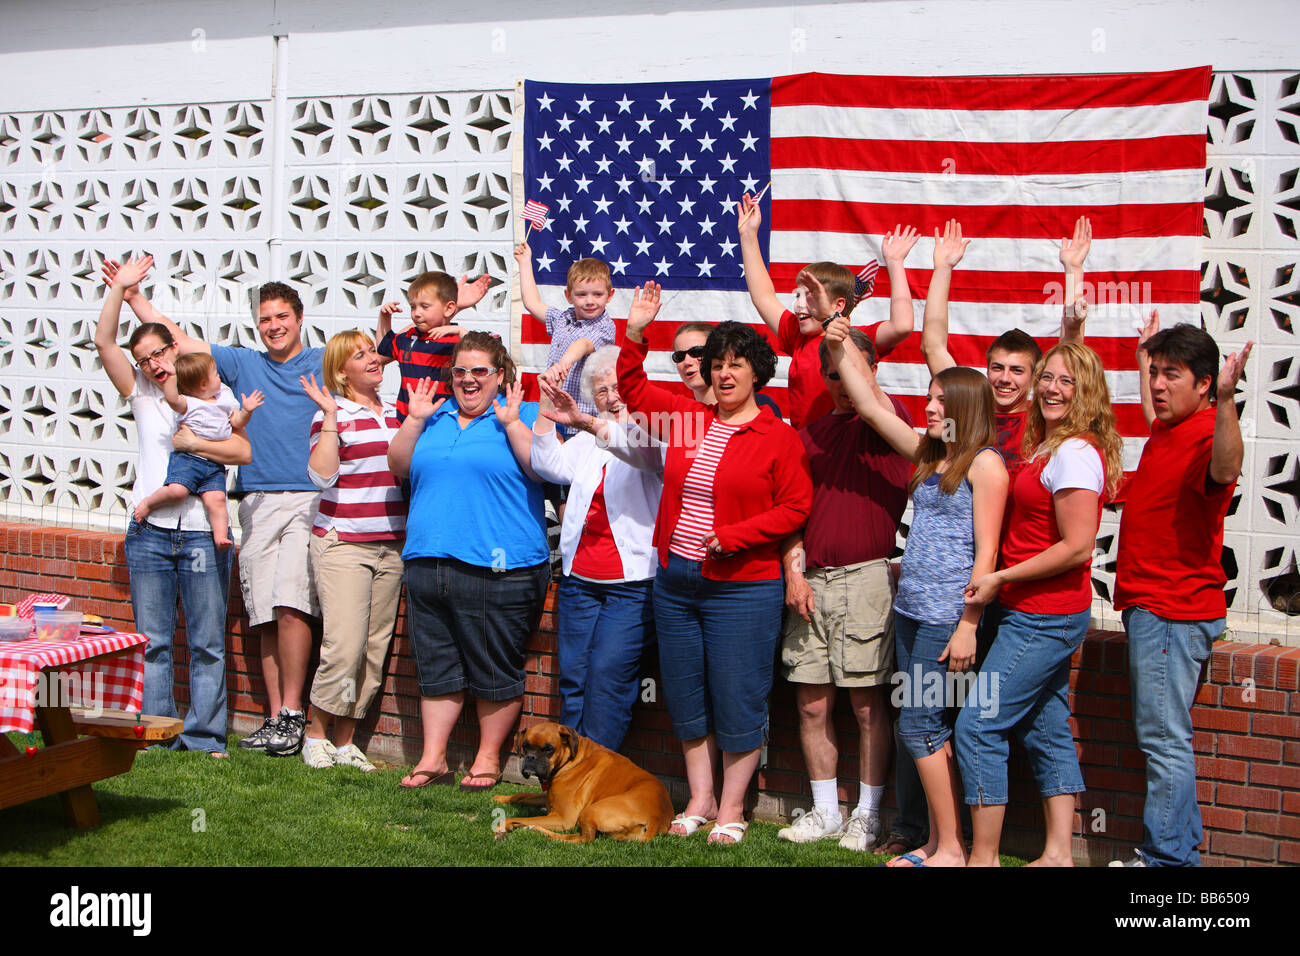 Large group of people in front of American flag waving hands - Stock Image